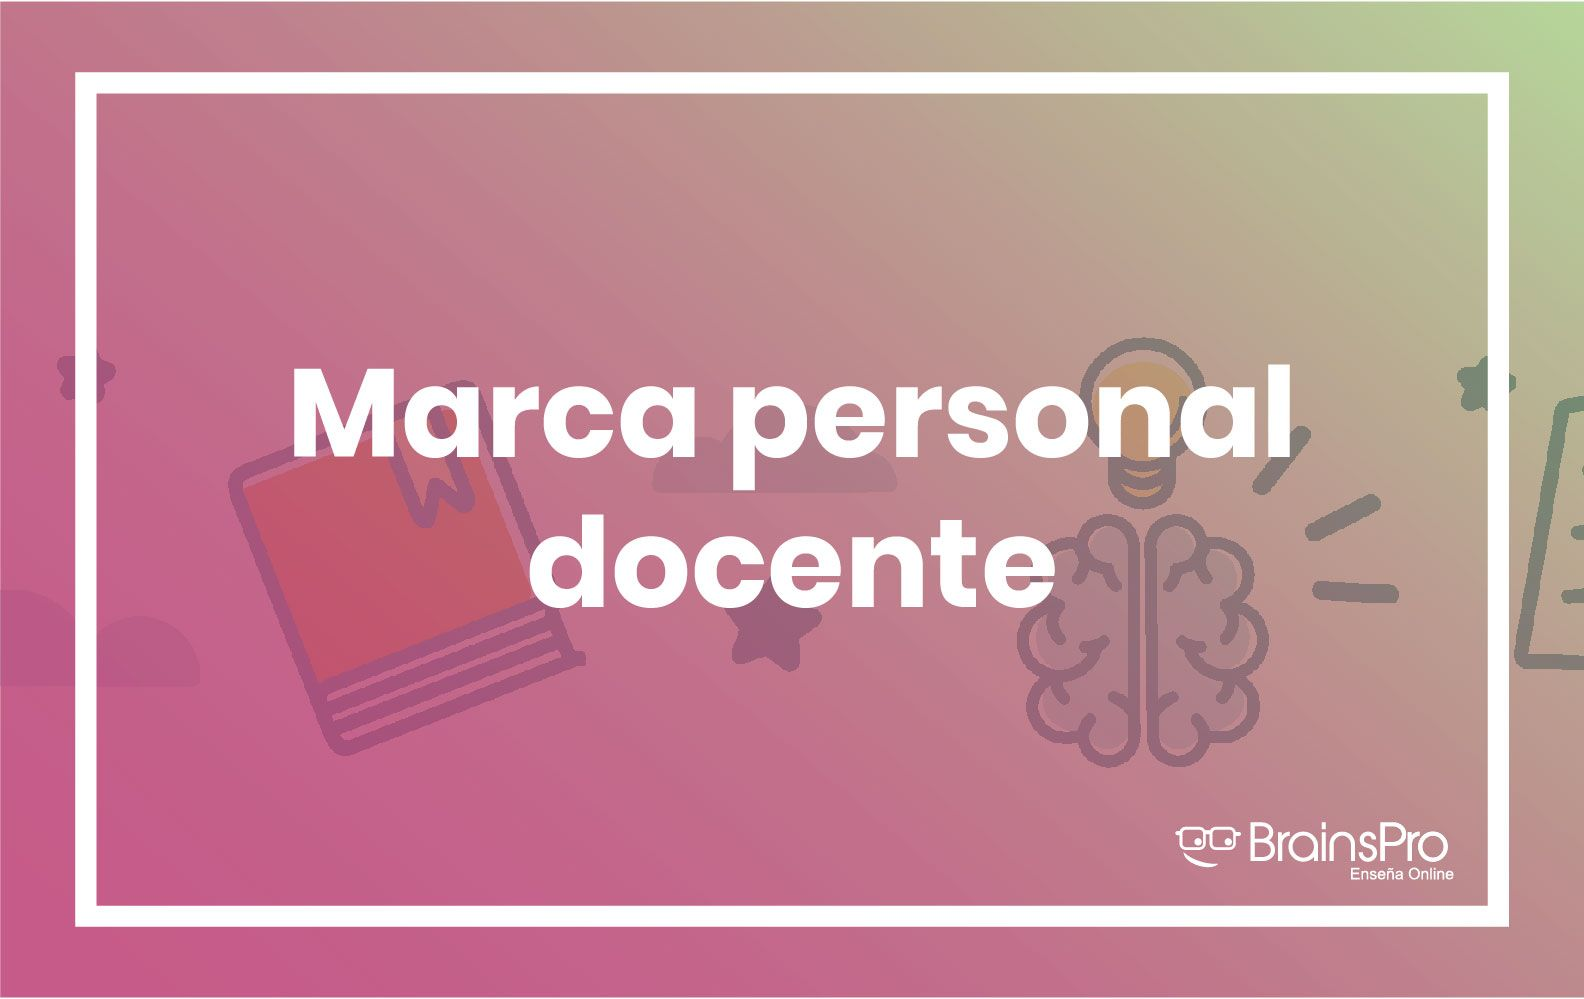 Marca personal docente